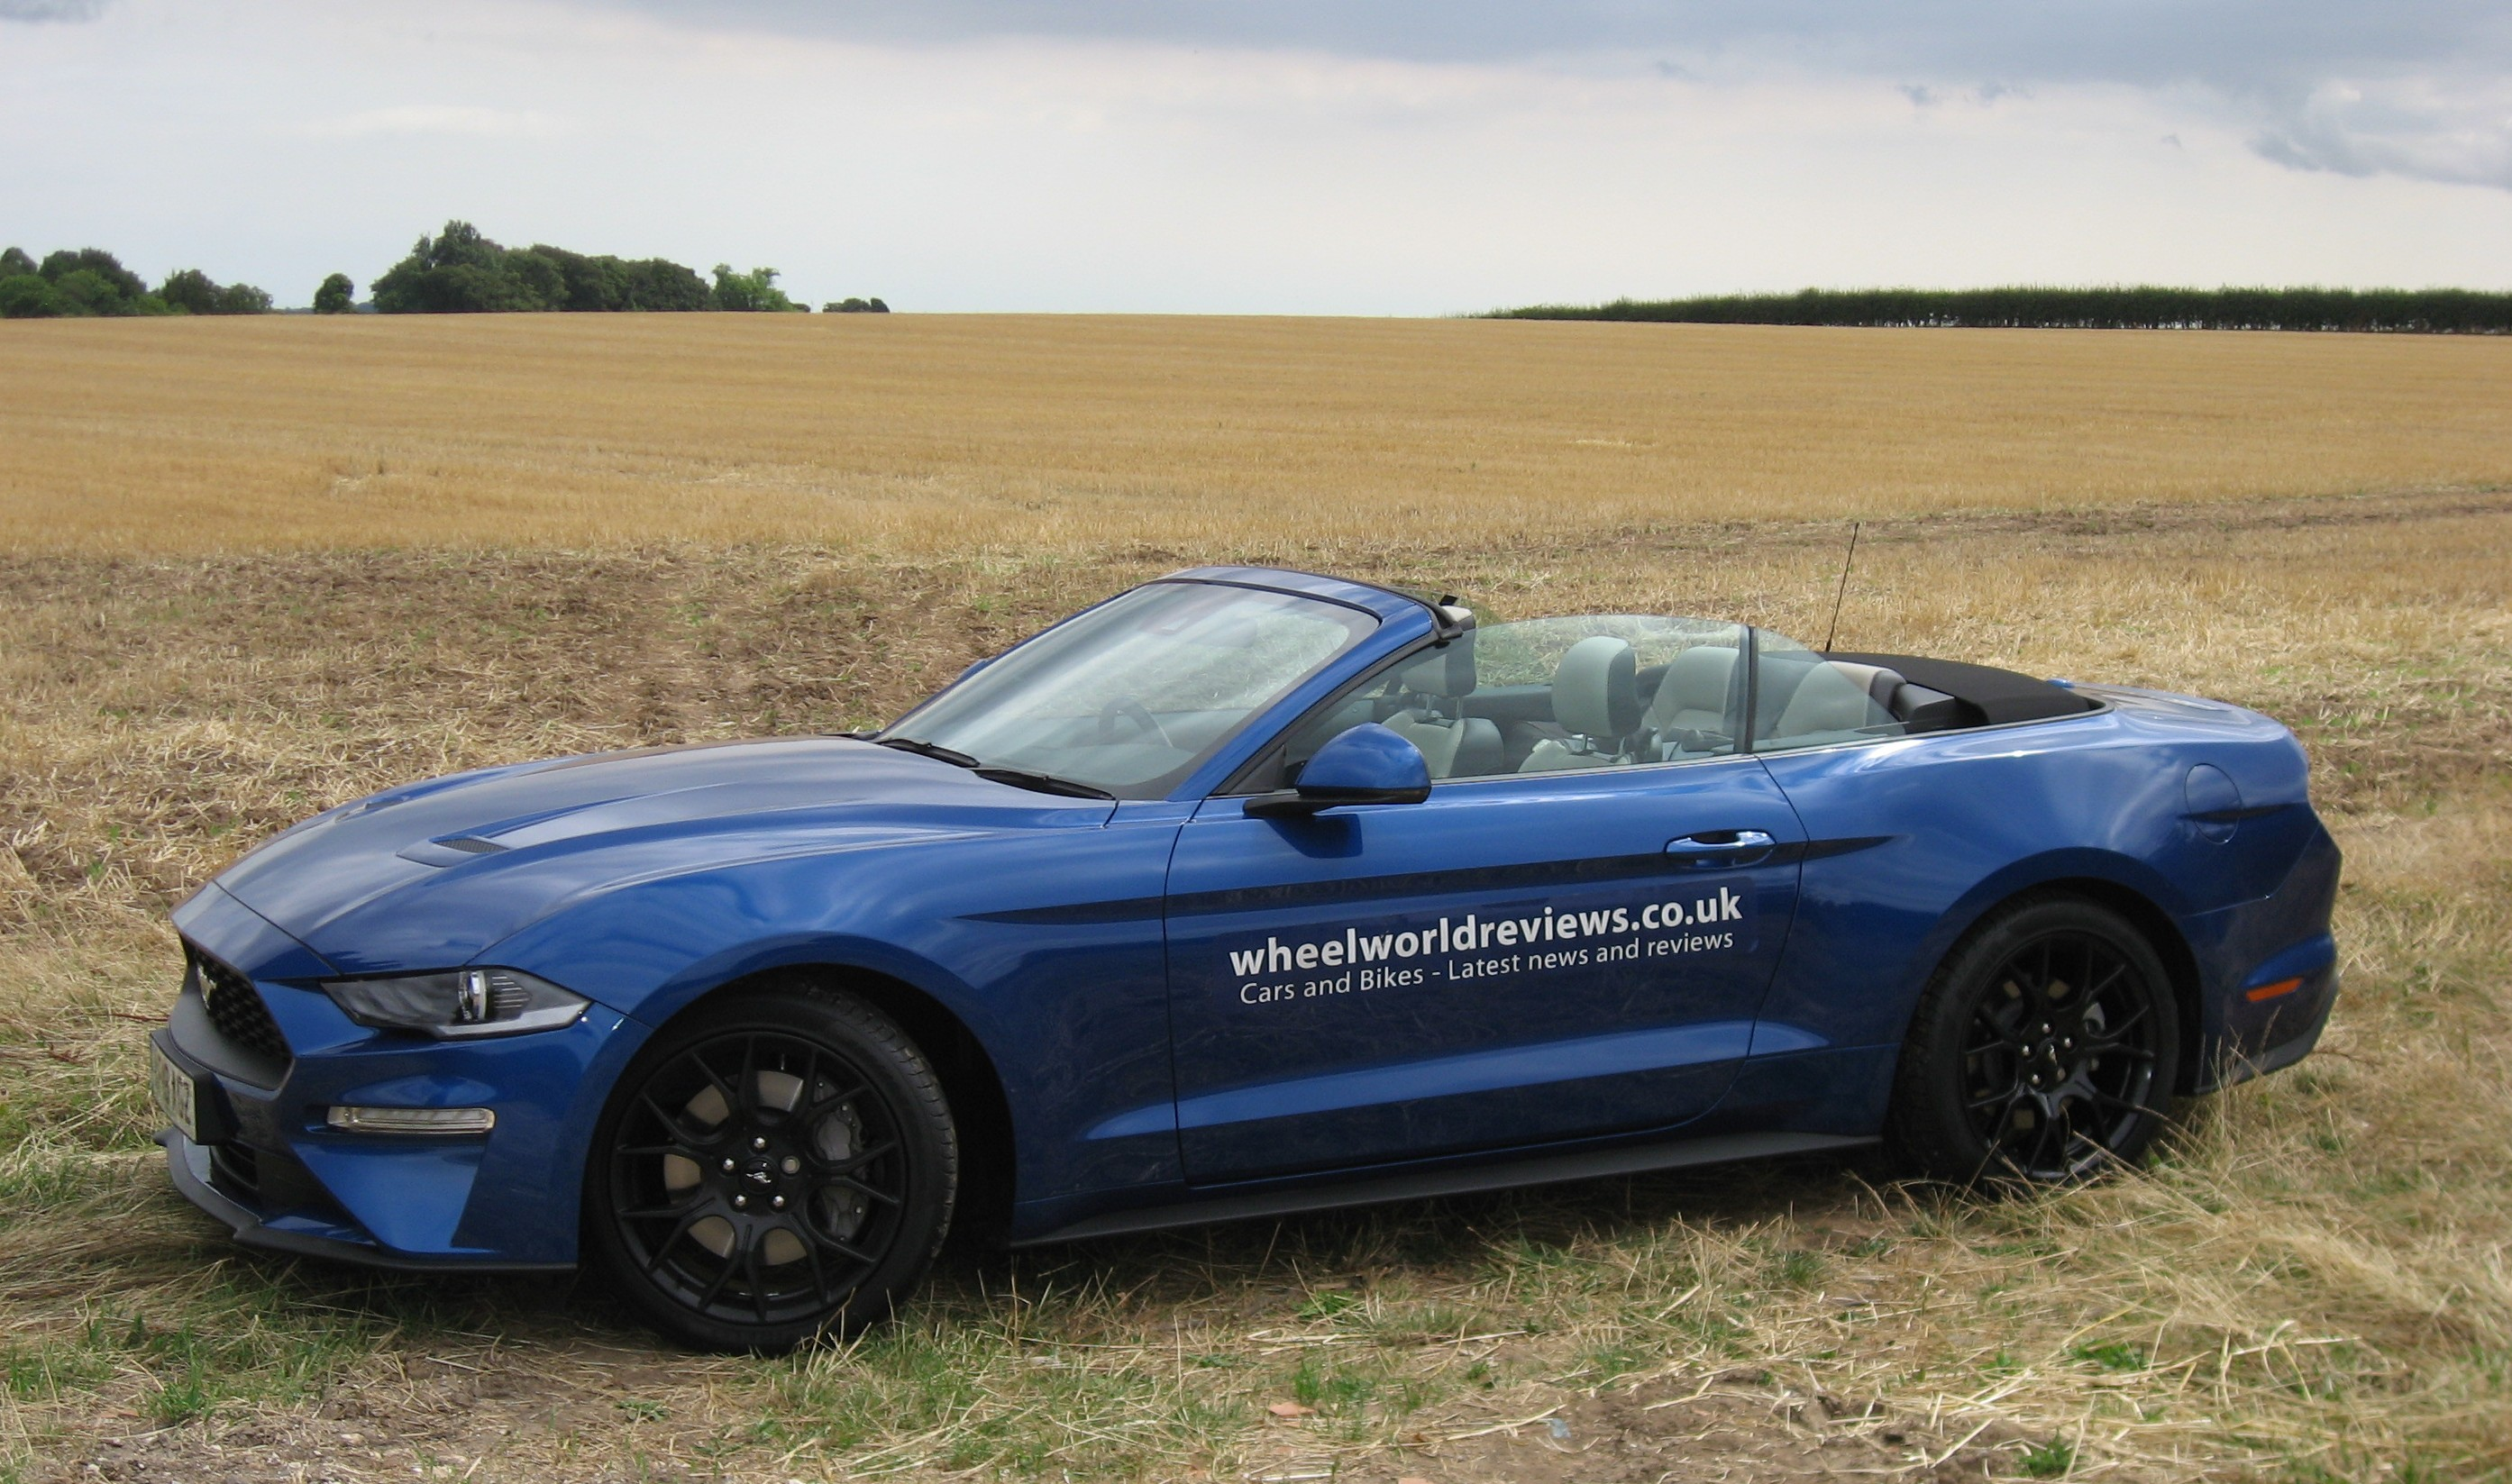 Ford Mustang Convertible road test report and review - a great looking car with tremendous road presence.